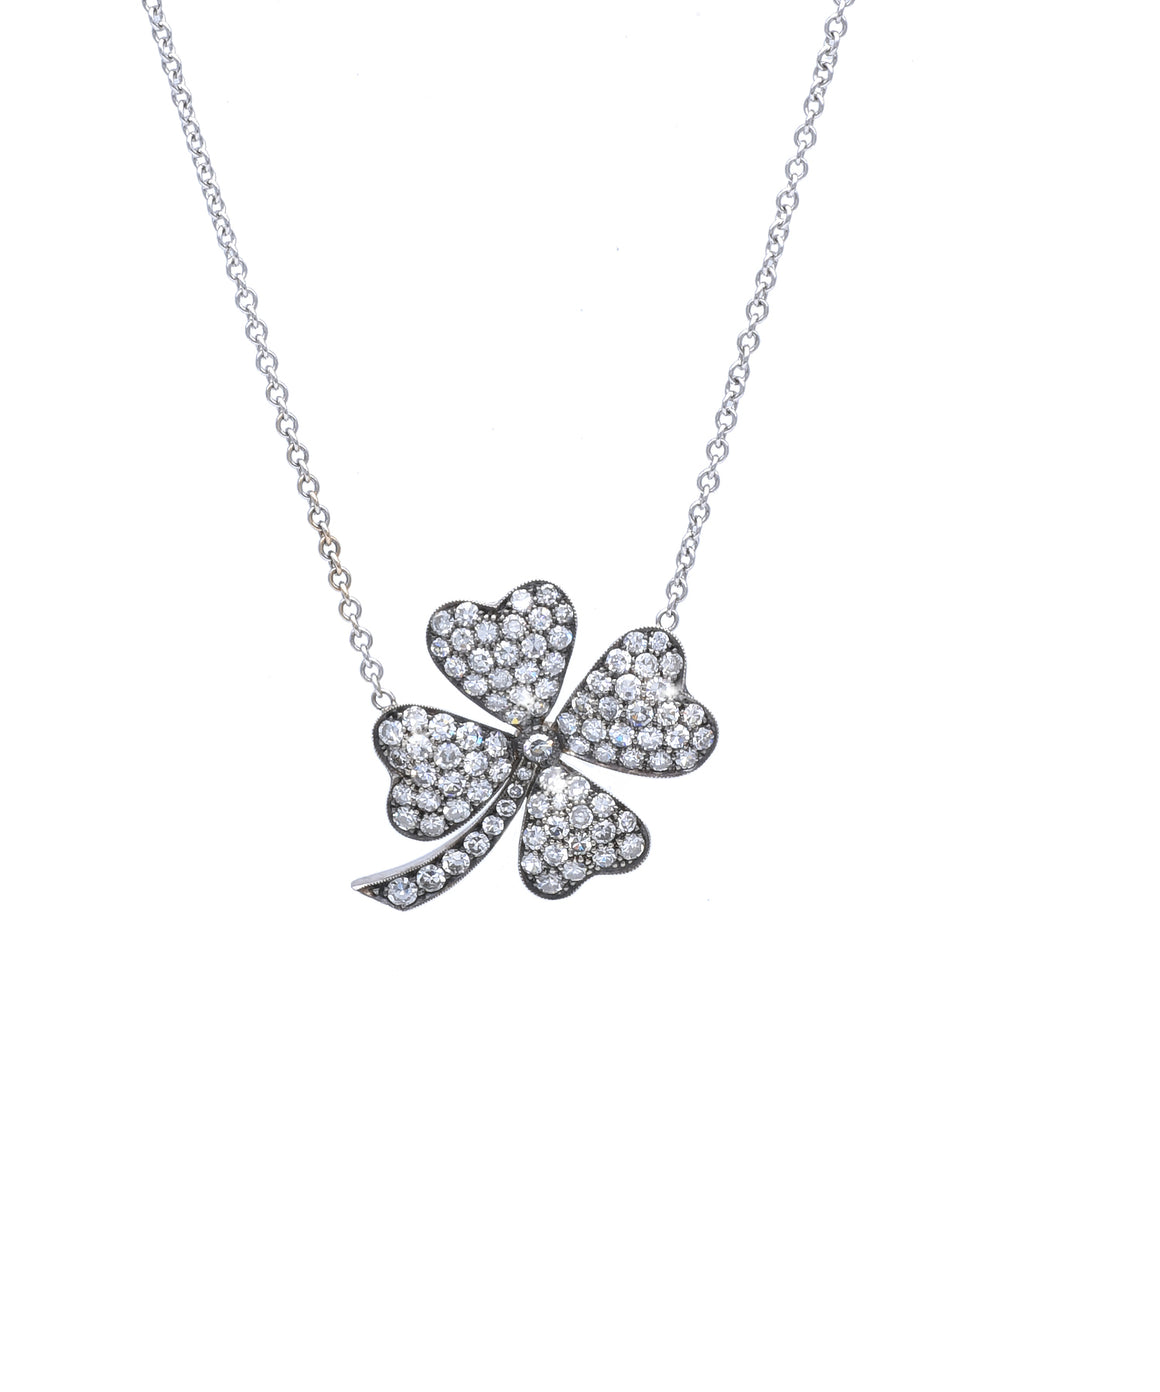 Clover pendant in white gold